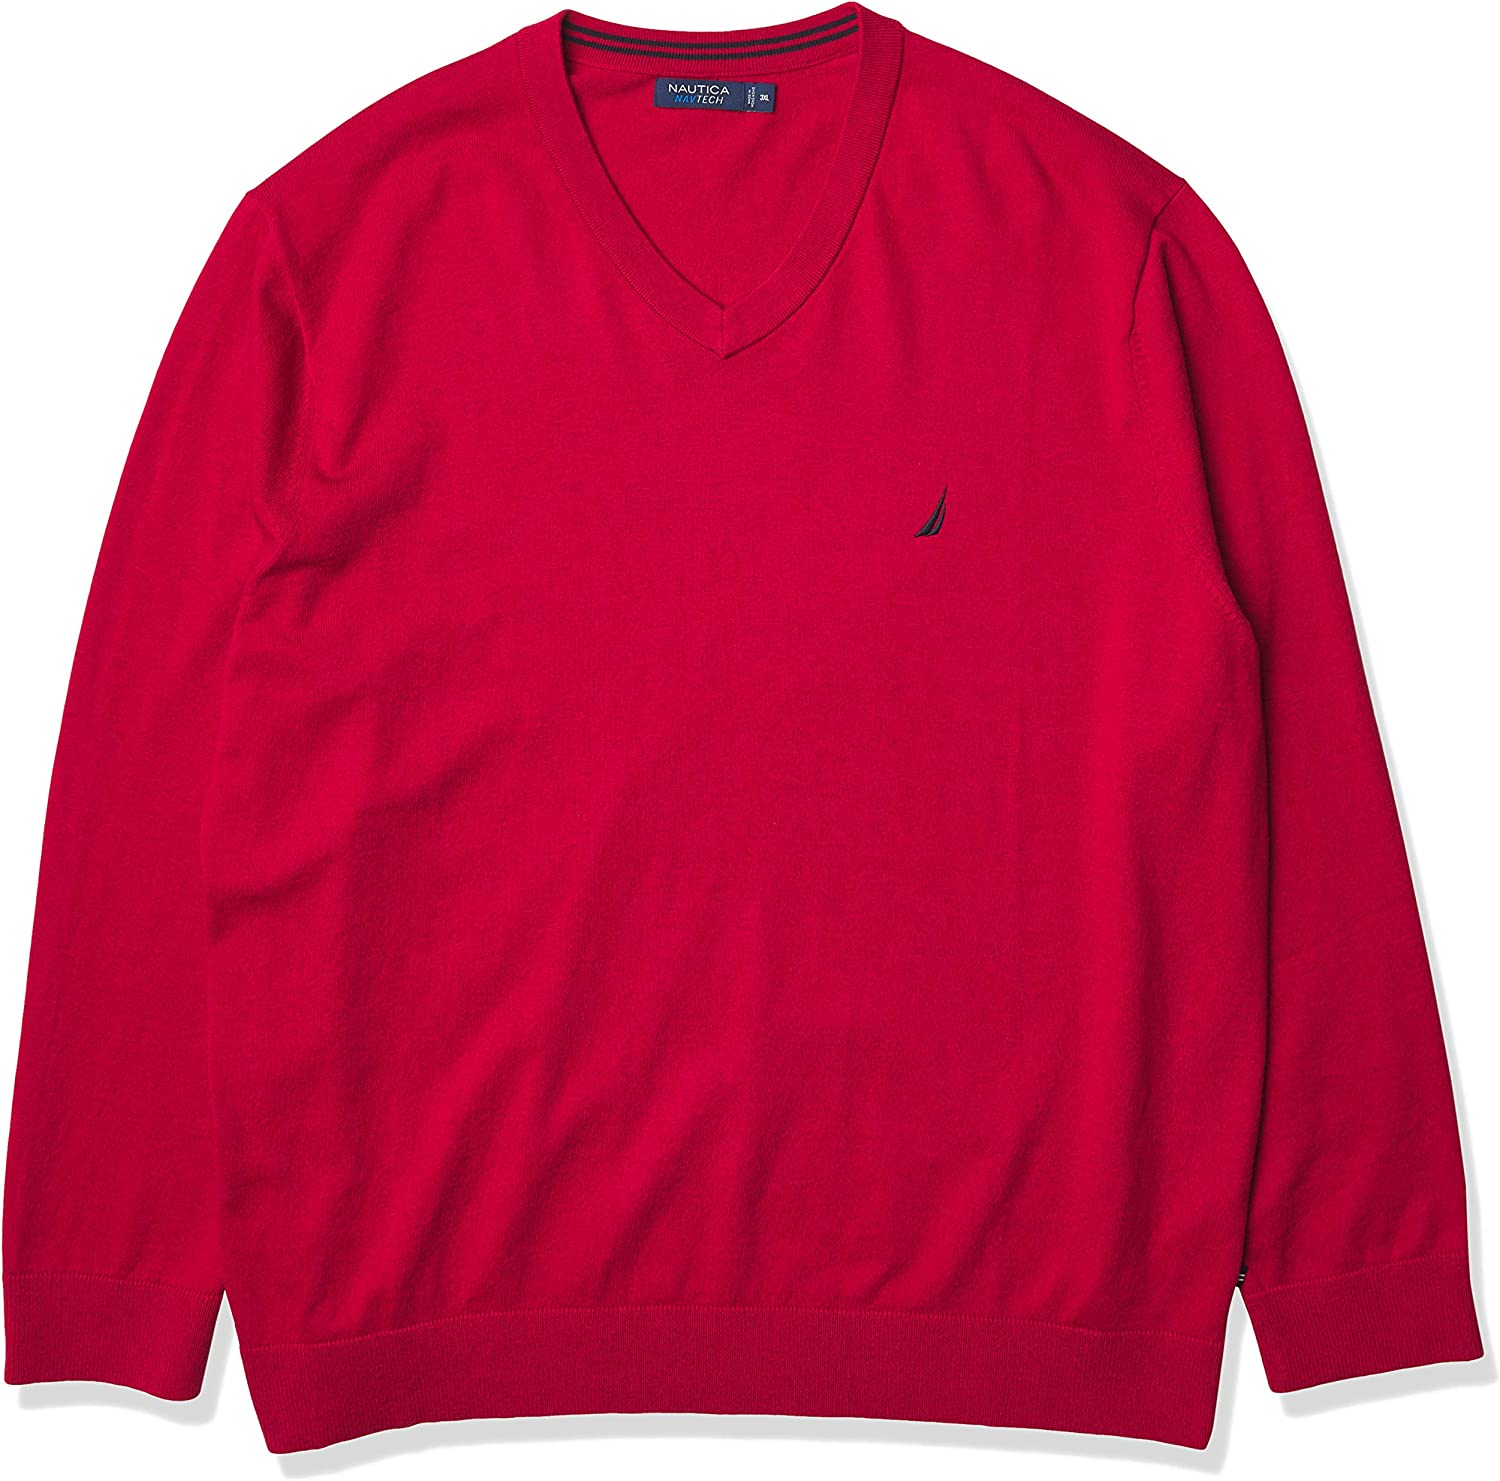 Nautica Men's Big and Tall Navtech V-Neck Sweater